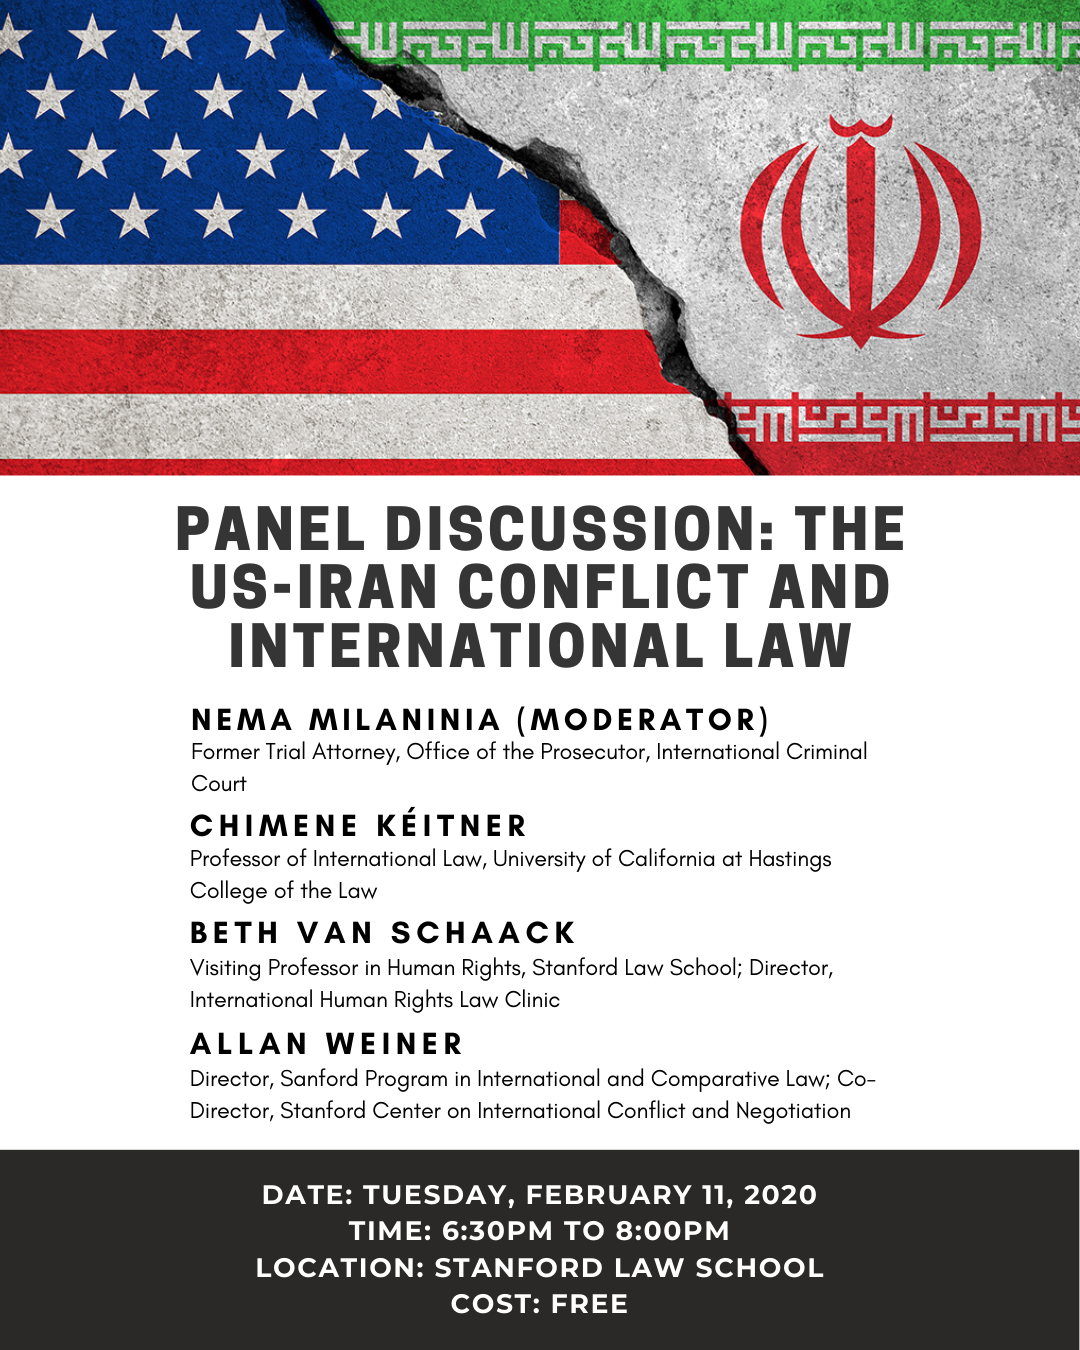 Panel Discussion: The Us-Iran Conflict And International for Stanford Law School Calendar